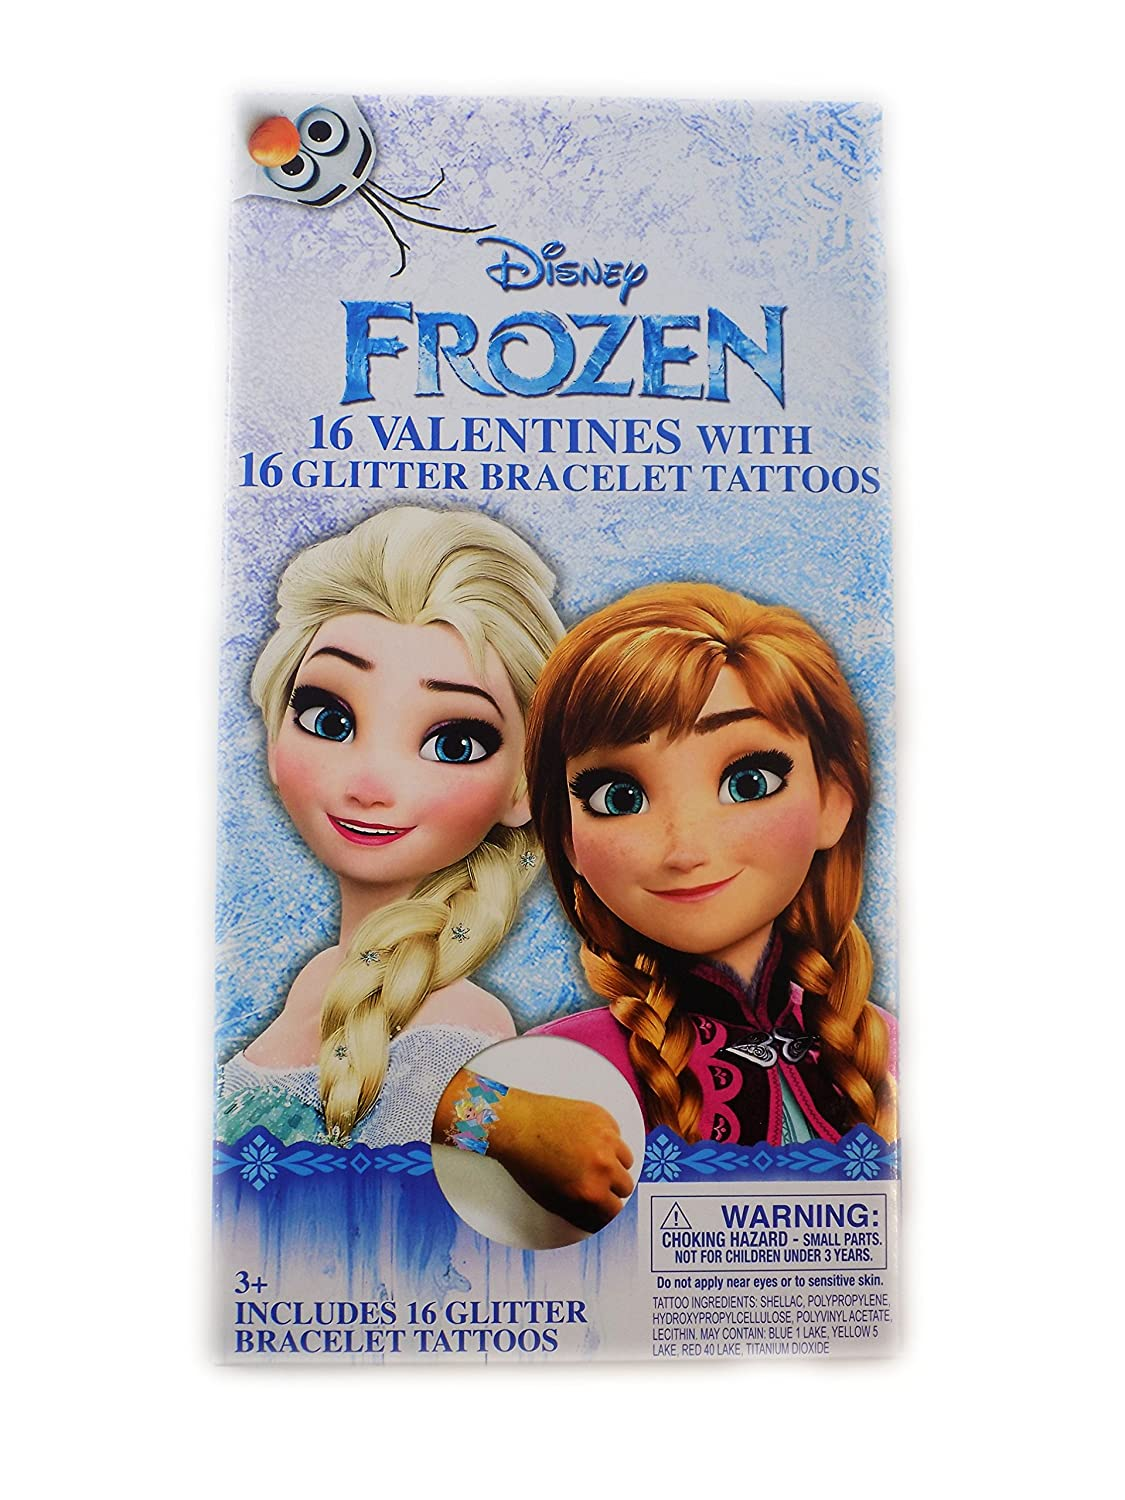 Amazon.com : Disney Frozen Valentine Day Sharing Cards with Tattoo Glitter Bracelet New 2018 Design : Office Products